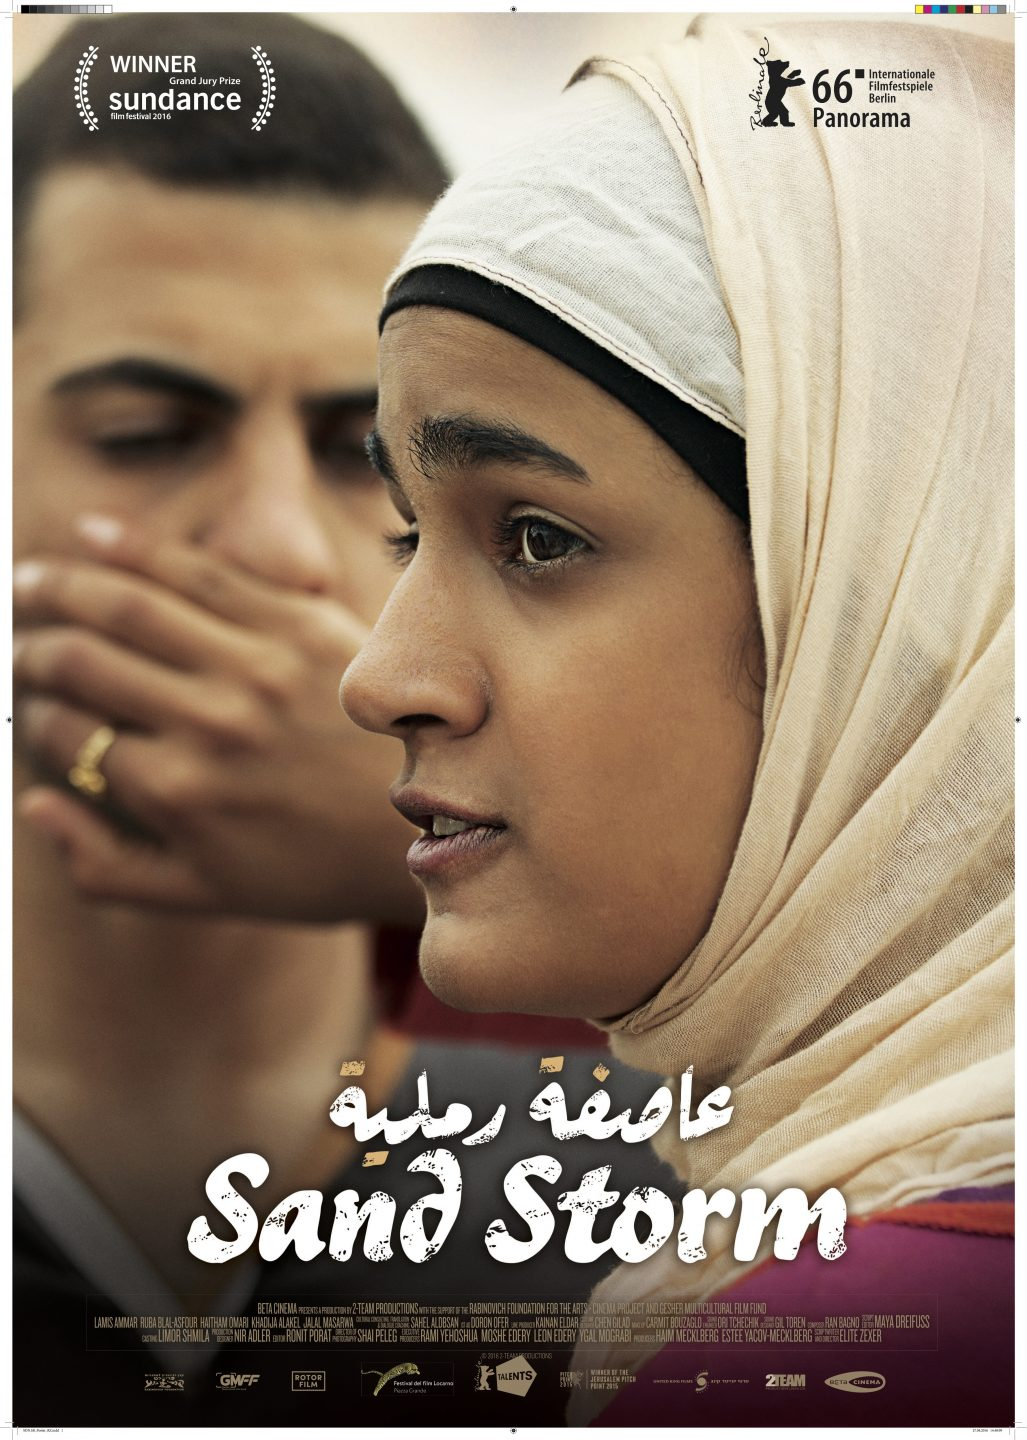 poster SAND STORM NEW